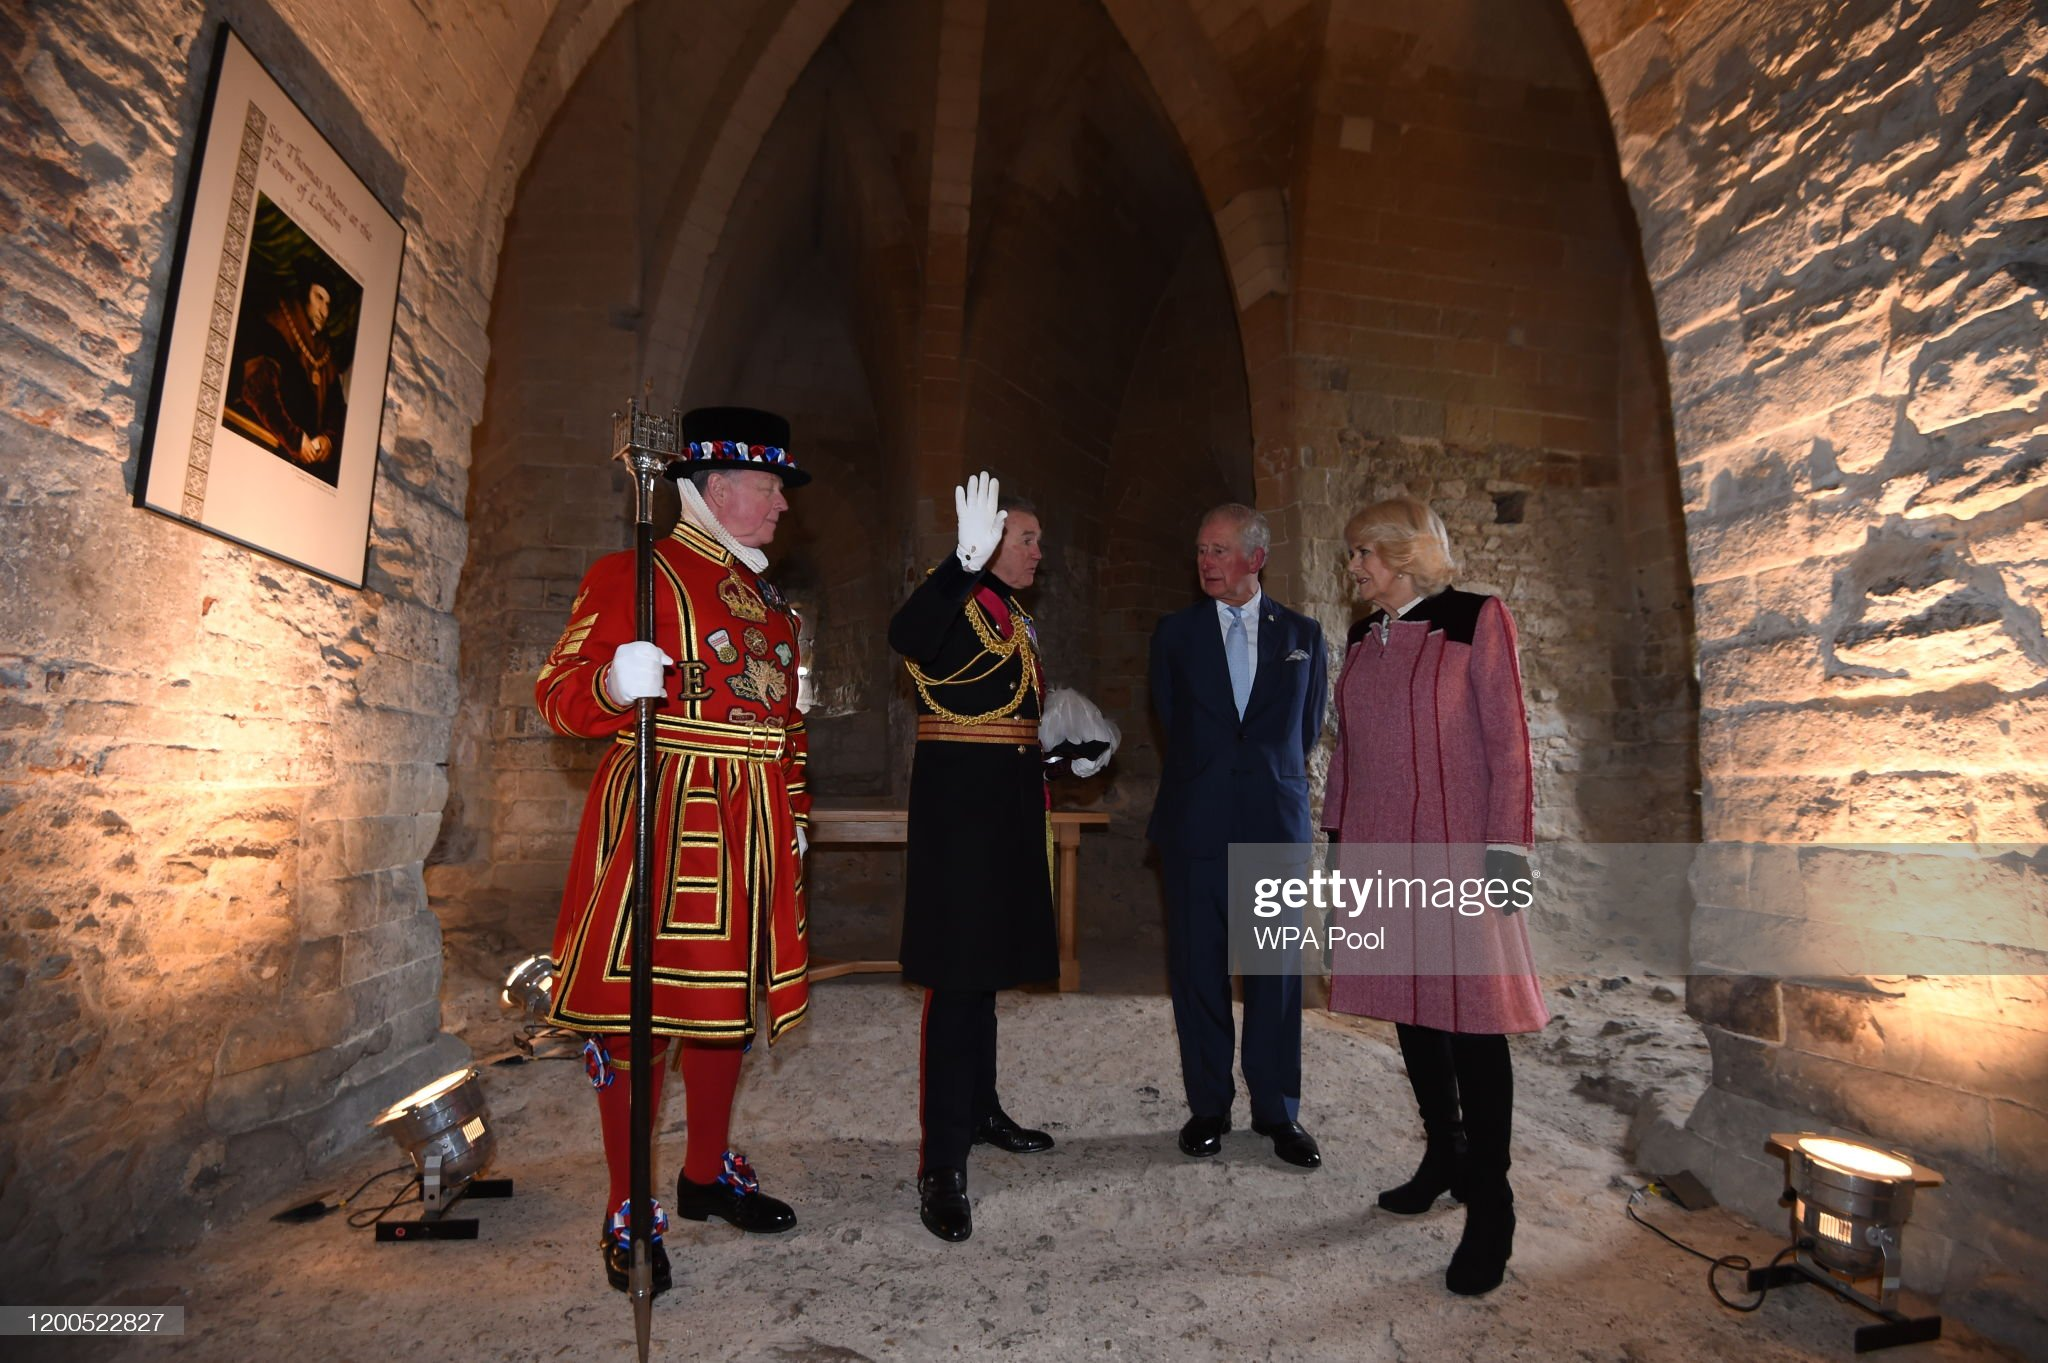 prince-charles-prince-of-wales-and-camilla-duchess-of-cornwall-visit-picture-id1200522827